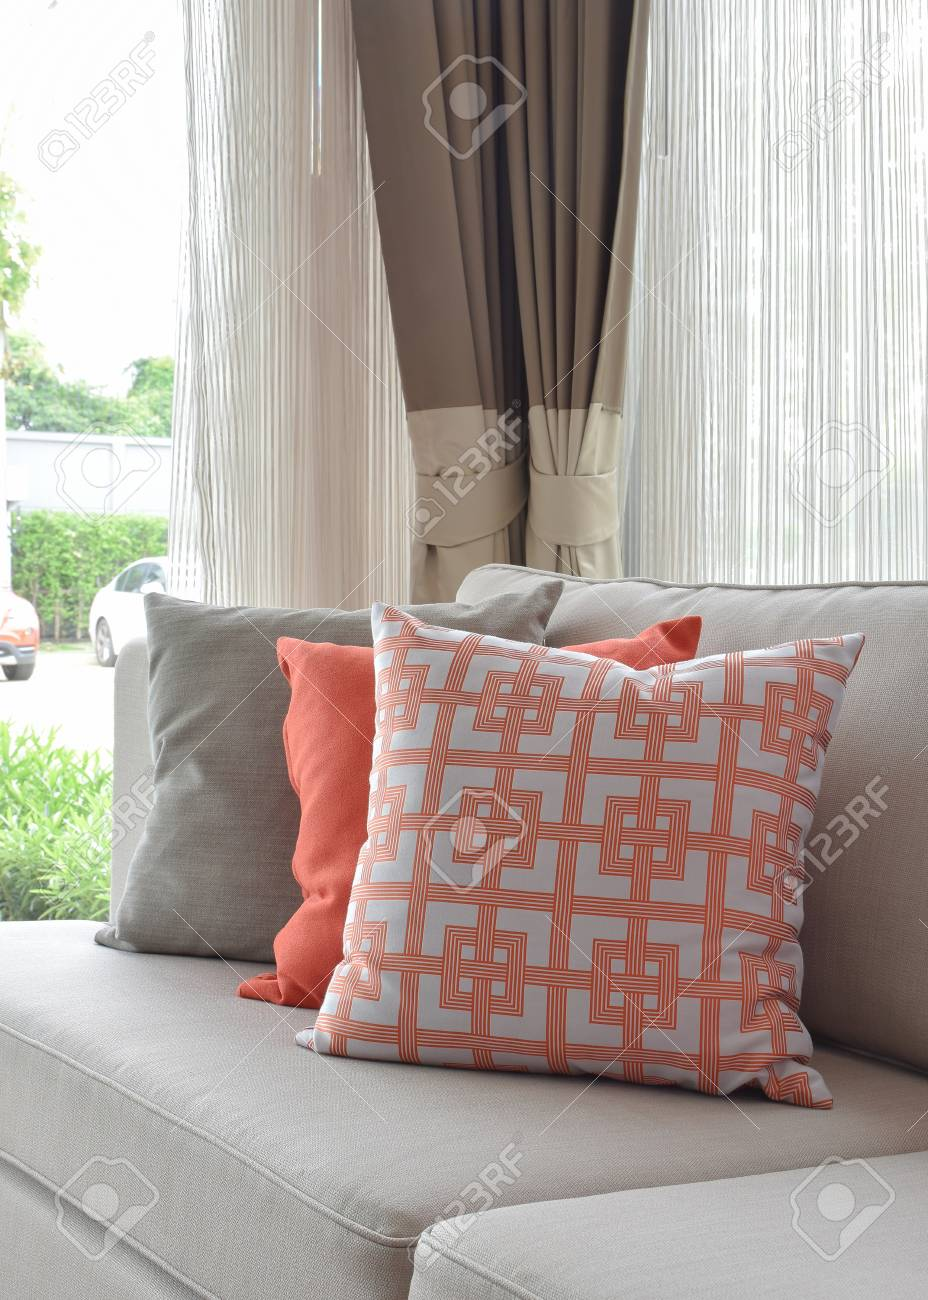 Sensational Graphic Pattern Orange And Gray Pillow On Beige Sofa Machost Co Dining Chair Design Ideas Machostcouk